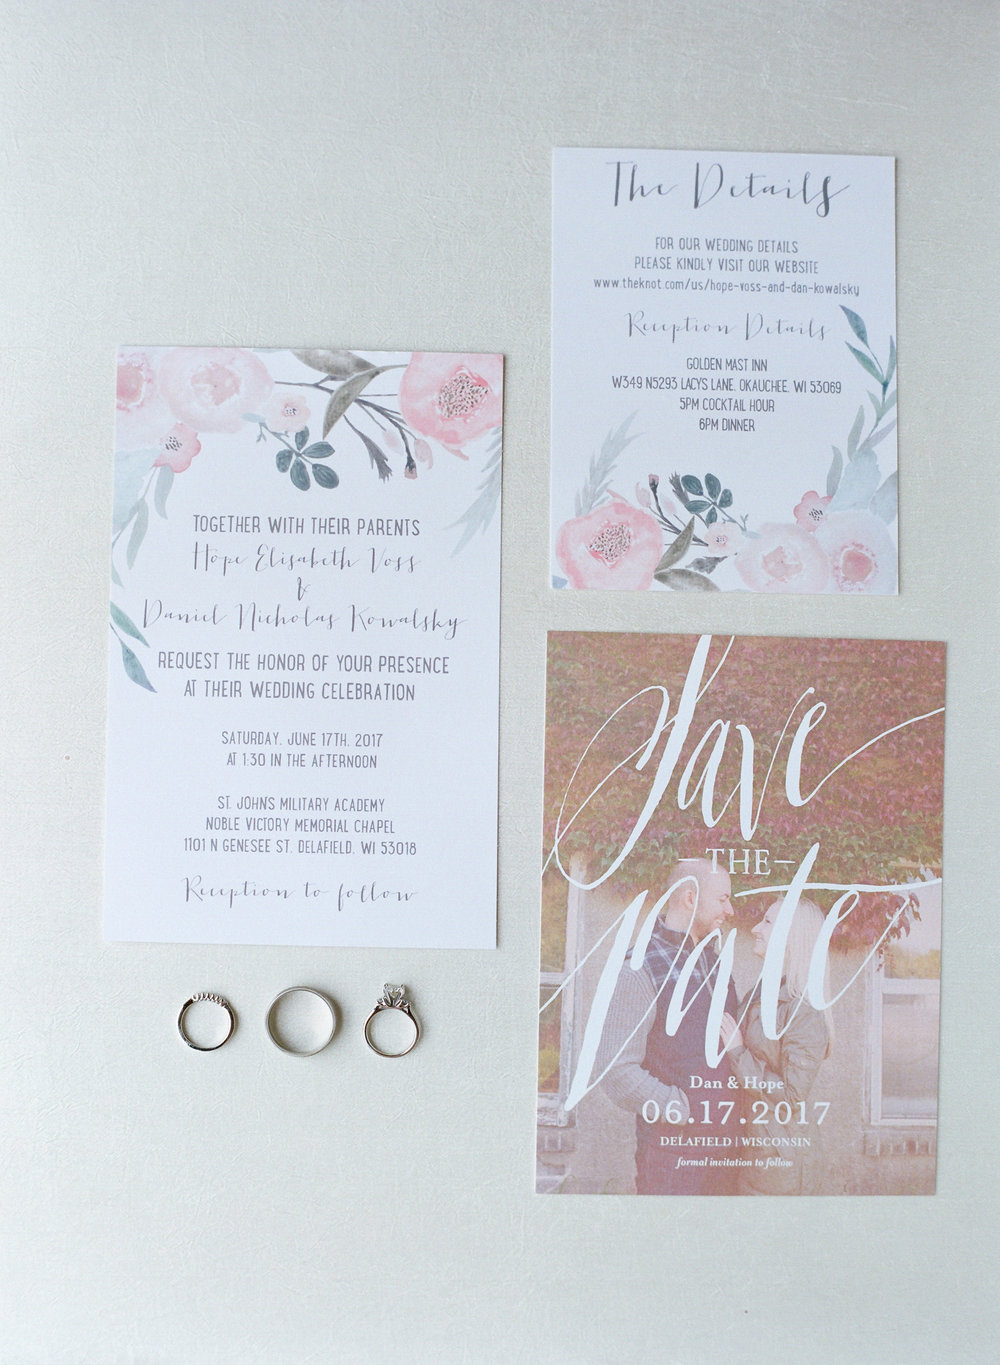 golden mast inn invitation suite